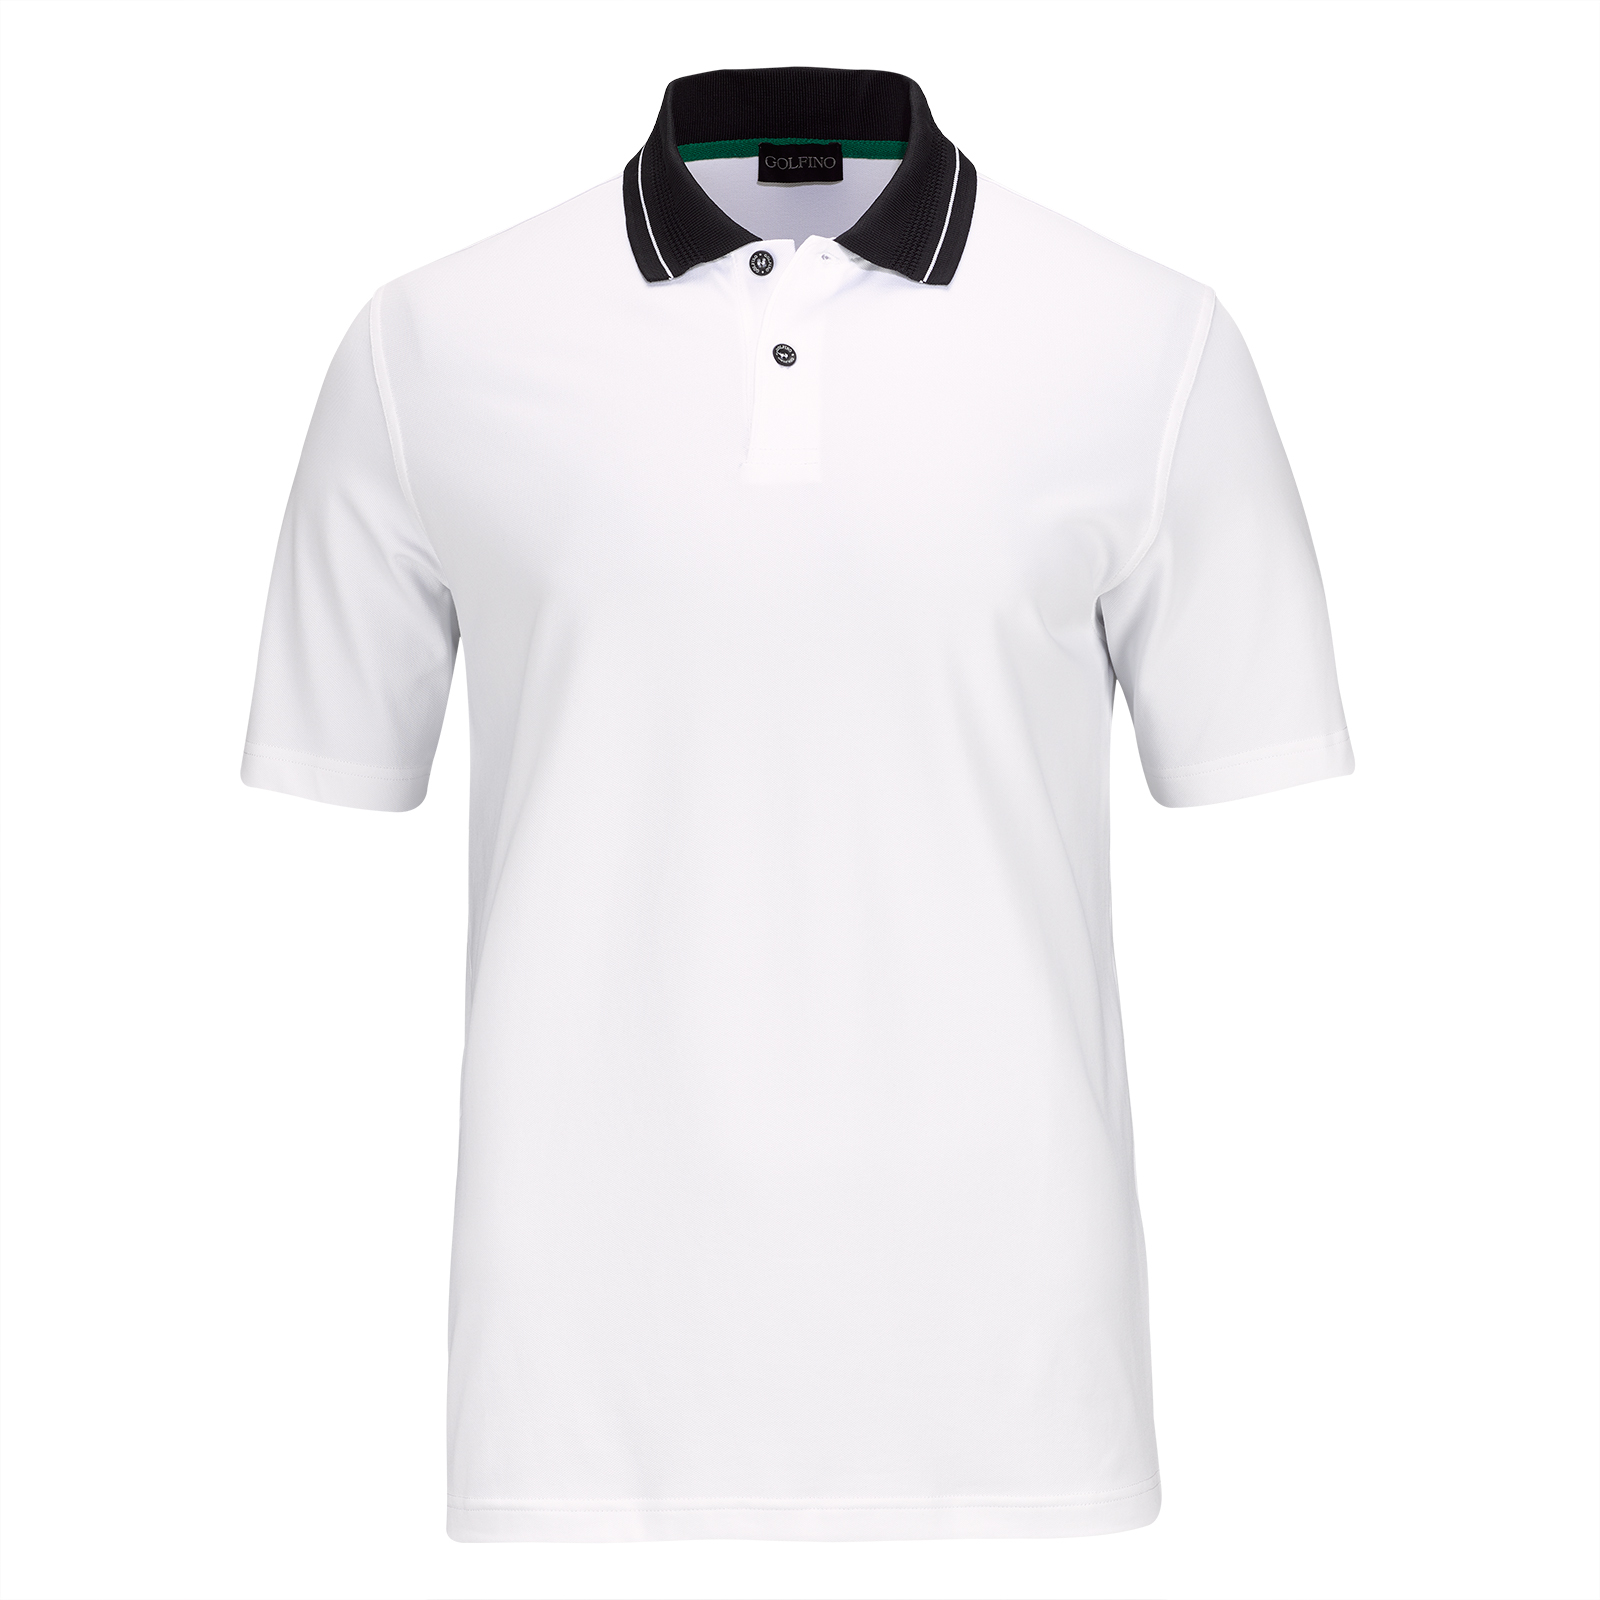 Men's cotton blend golf piqué with sun protection and moisture management